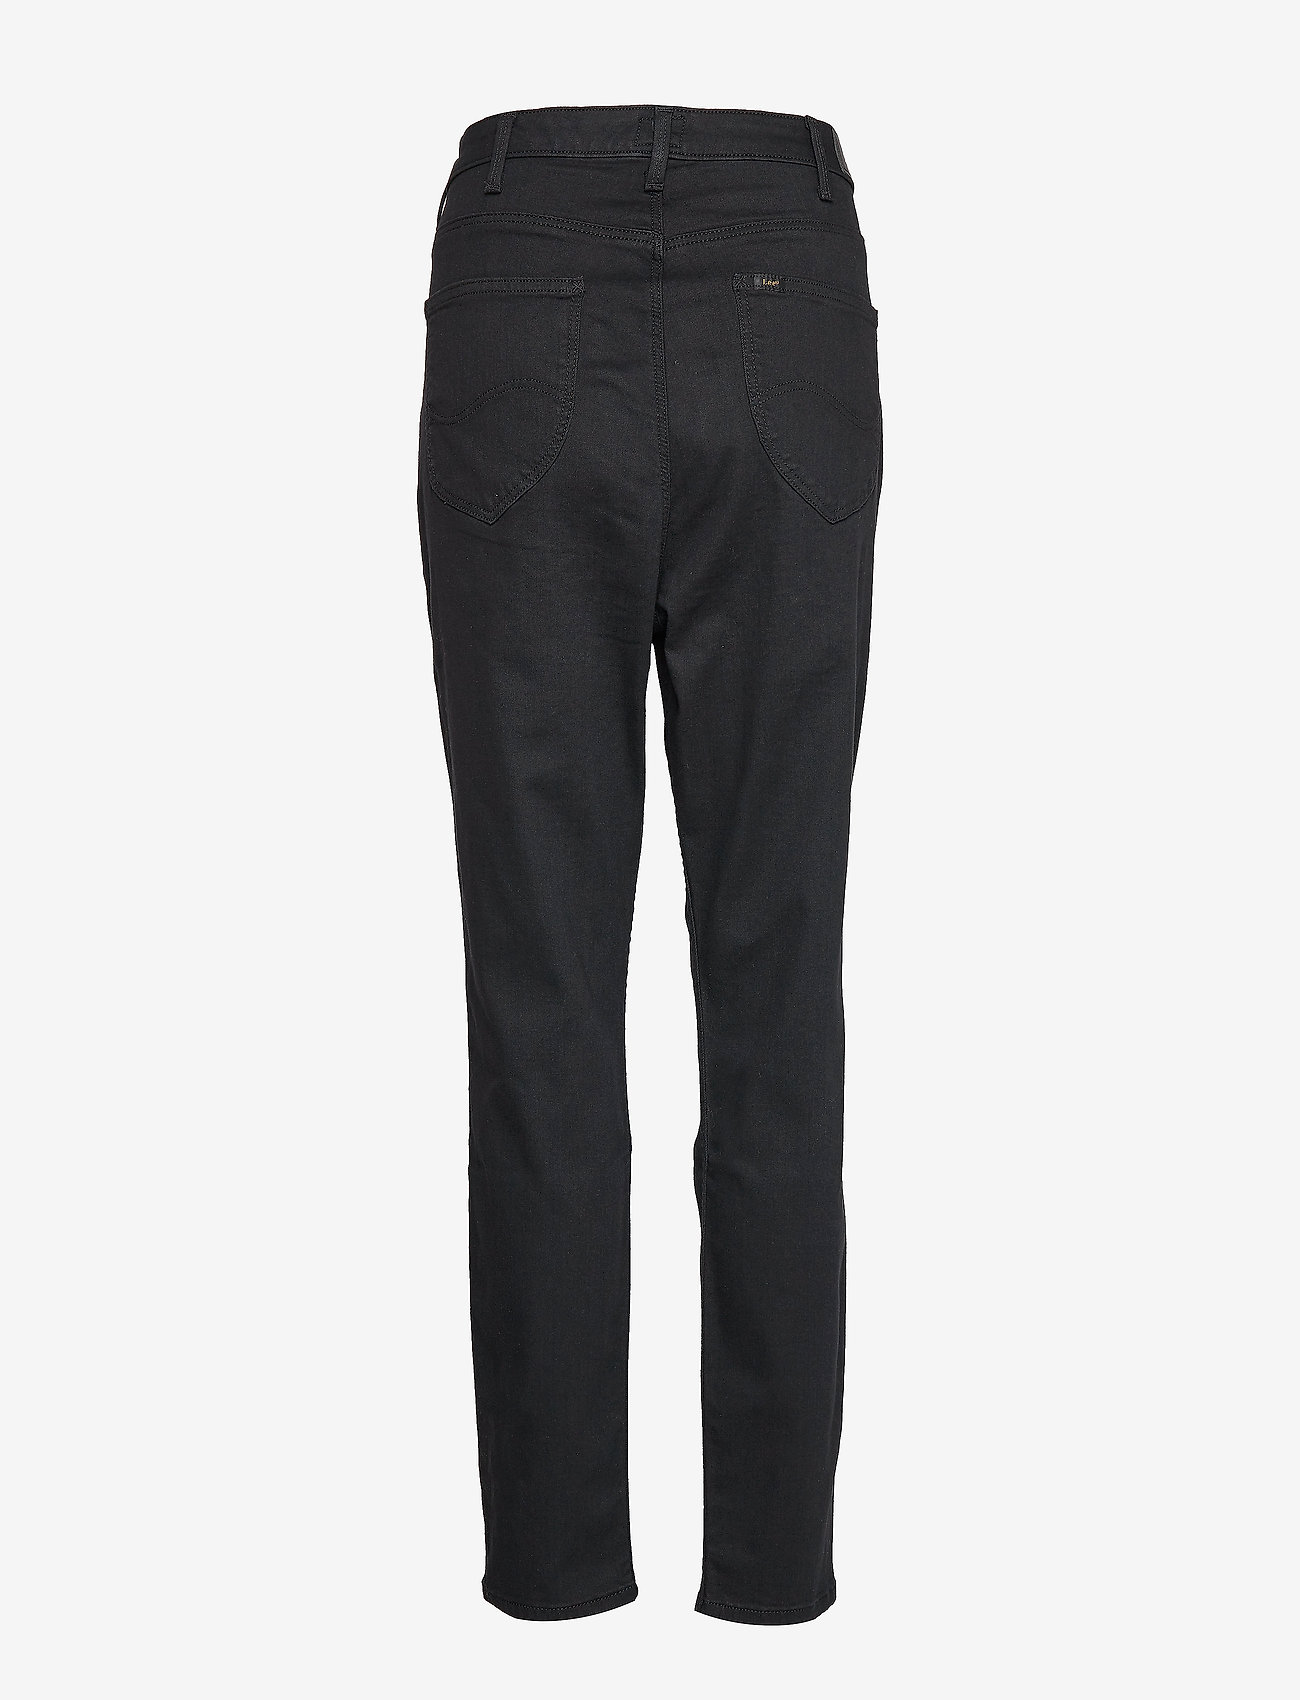 Lee Jeans - SCARLETT HIGH - pantalons droits - black rinse - 1